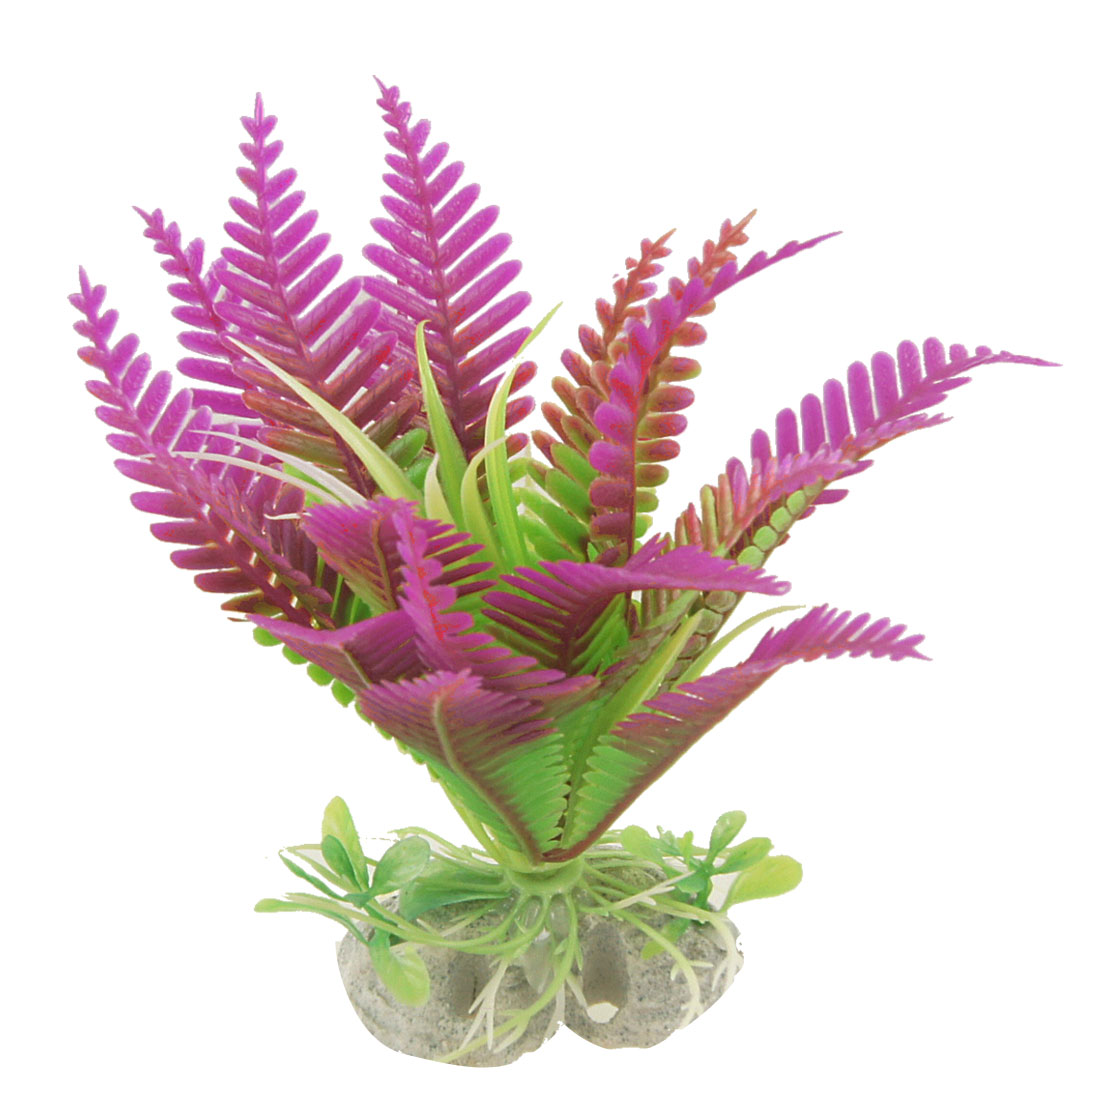 Fish Tank Perforated Base Plastic Aquatic Plants Decor Purple Green 5""